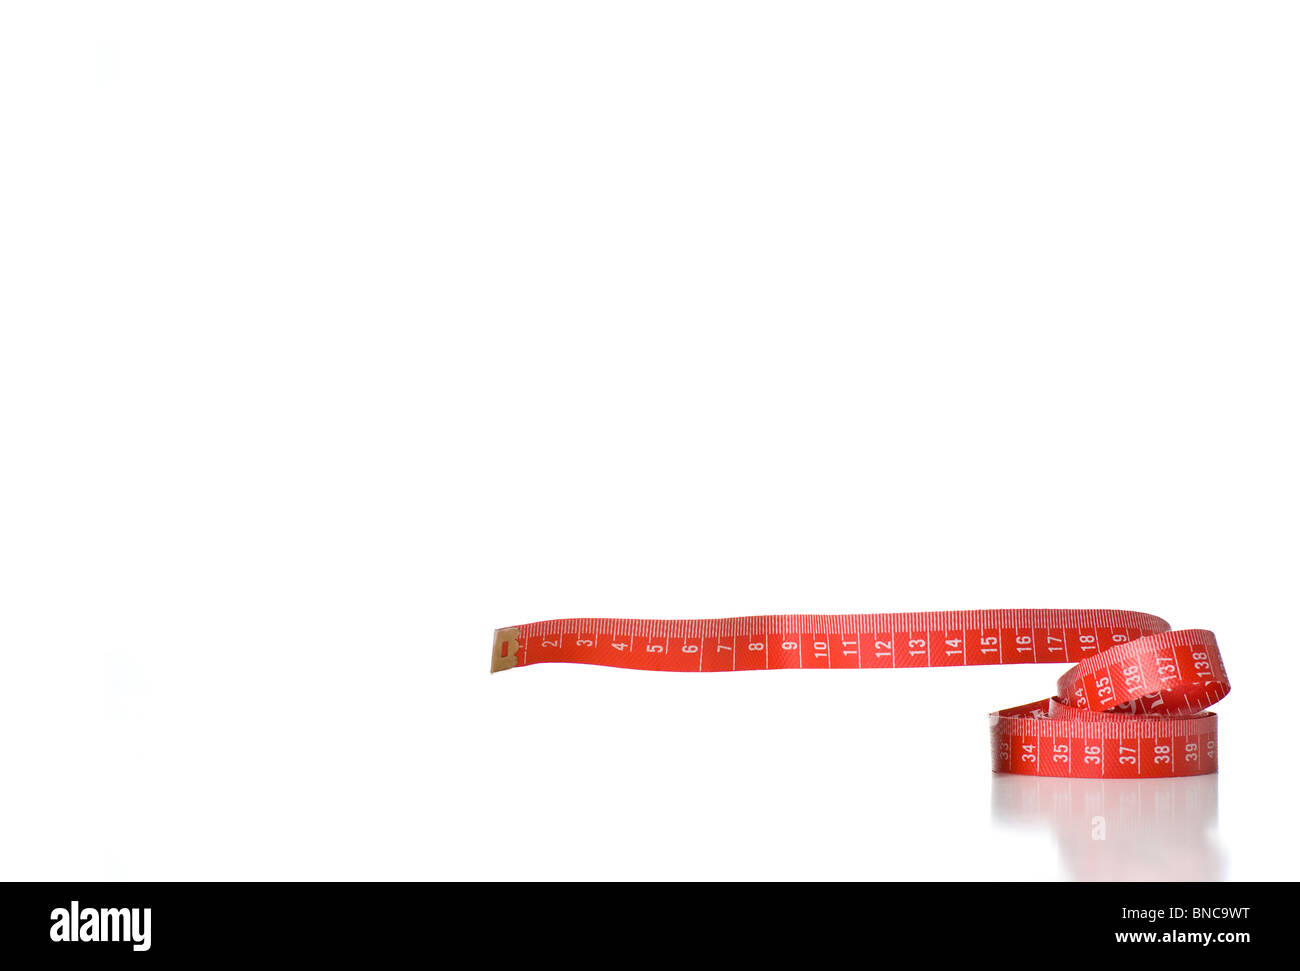 A coiled red metric measuring tape - Stock Image